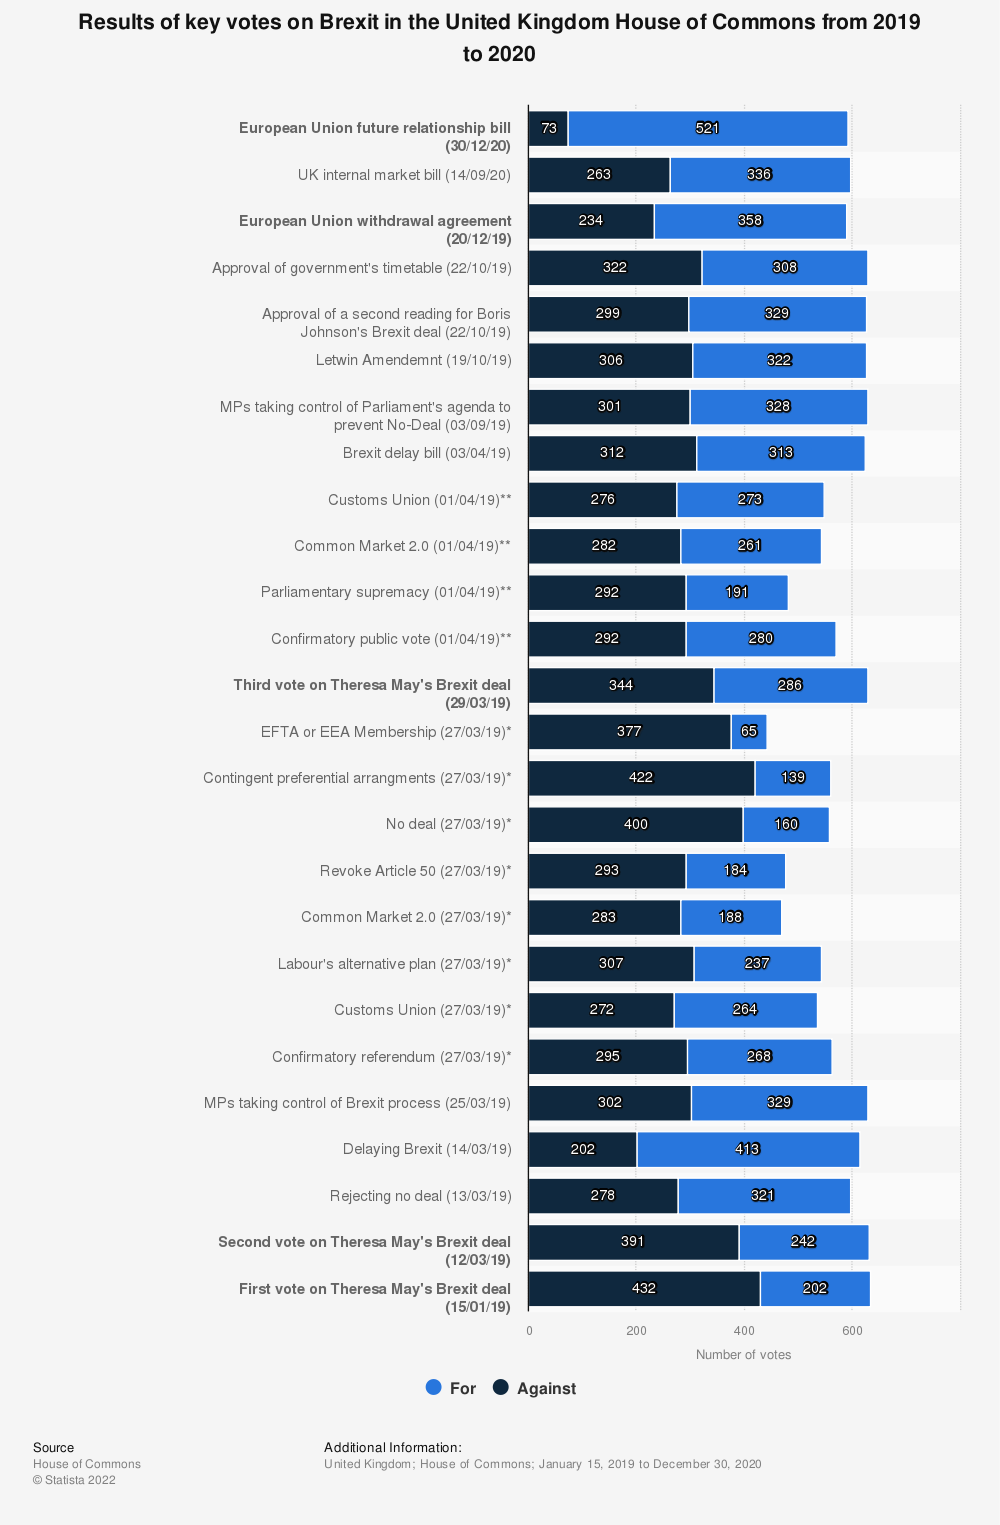 Statistic: Results of key votes on Brexit in the United Kingdom House of Commons in 2019* | Statista